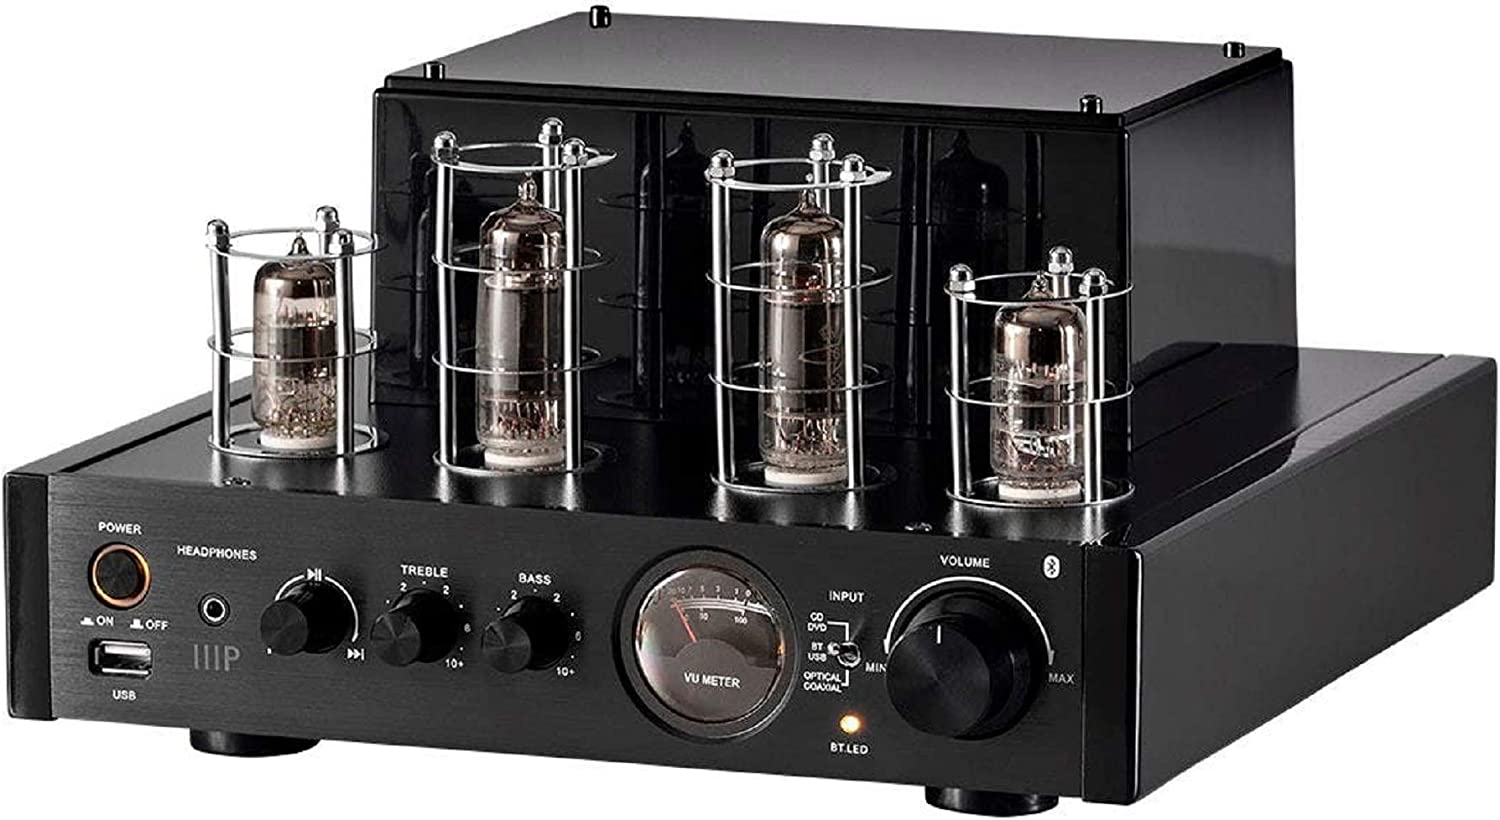 Monoprice Stereo Hybrid Tube Amplifier 2019 Edition, 25 Watt with Bluetooth, Wired RCA, Optical, Coaxial, and USB Connections, and Subwoofer Out